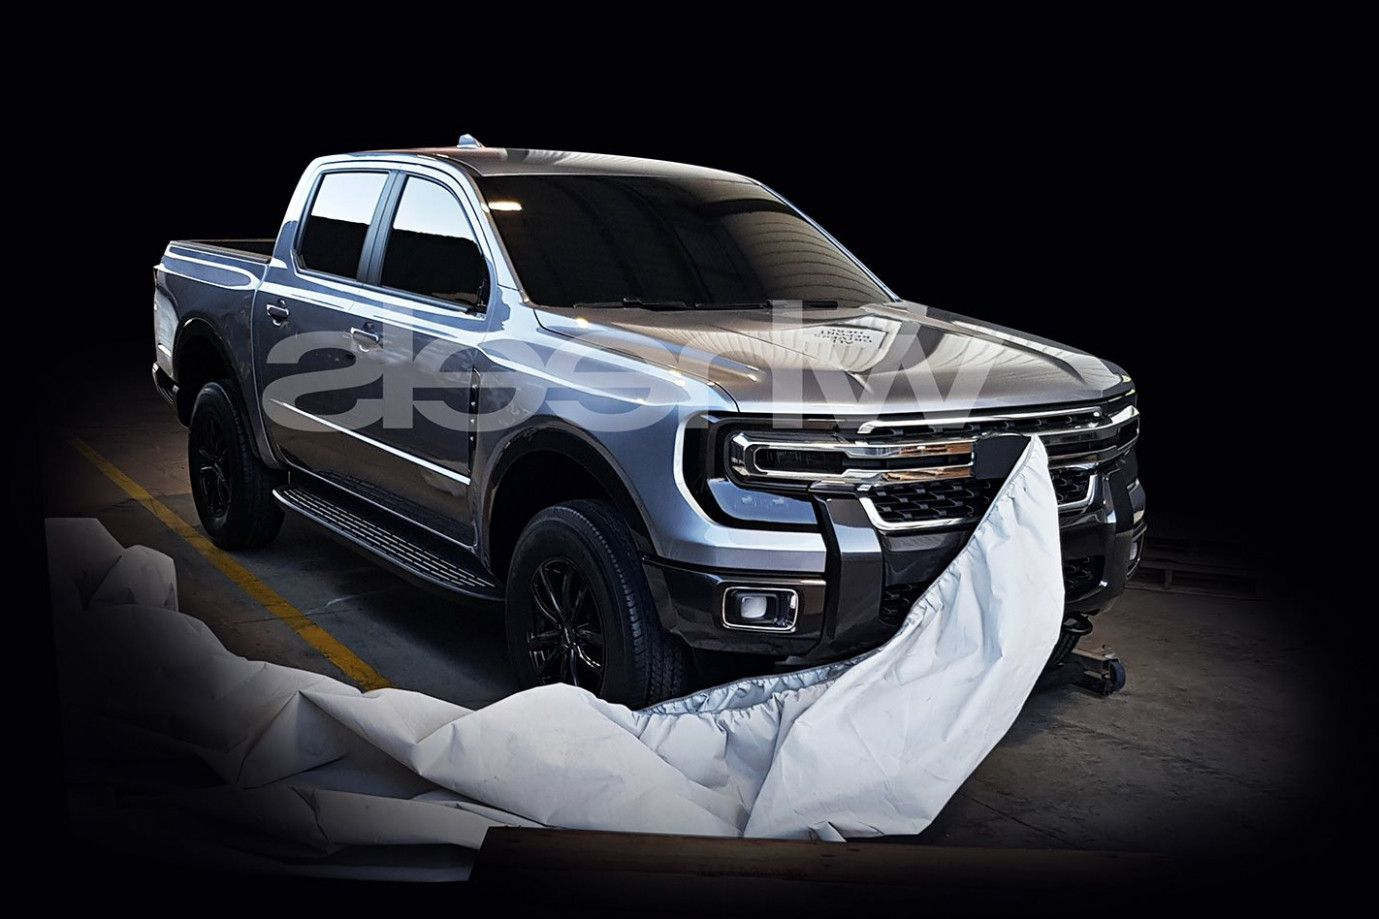 Five Fantastic Vacation Ideas For 2020 Ford Ranger Ford Ranger 2020 Ford Ranger Ford Ranger Wildtrak